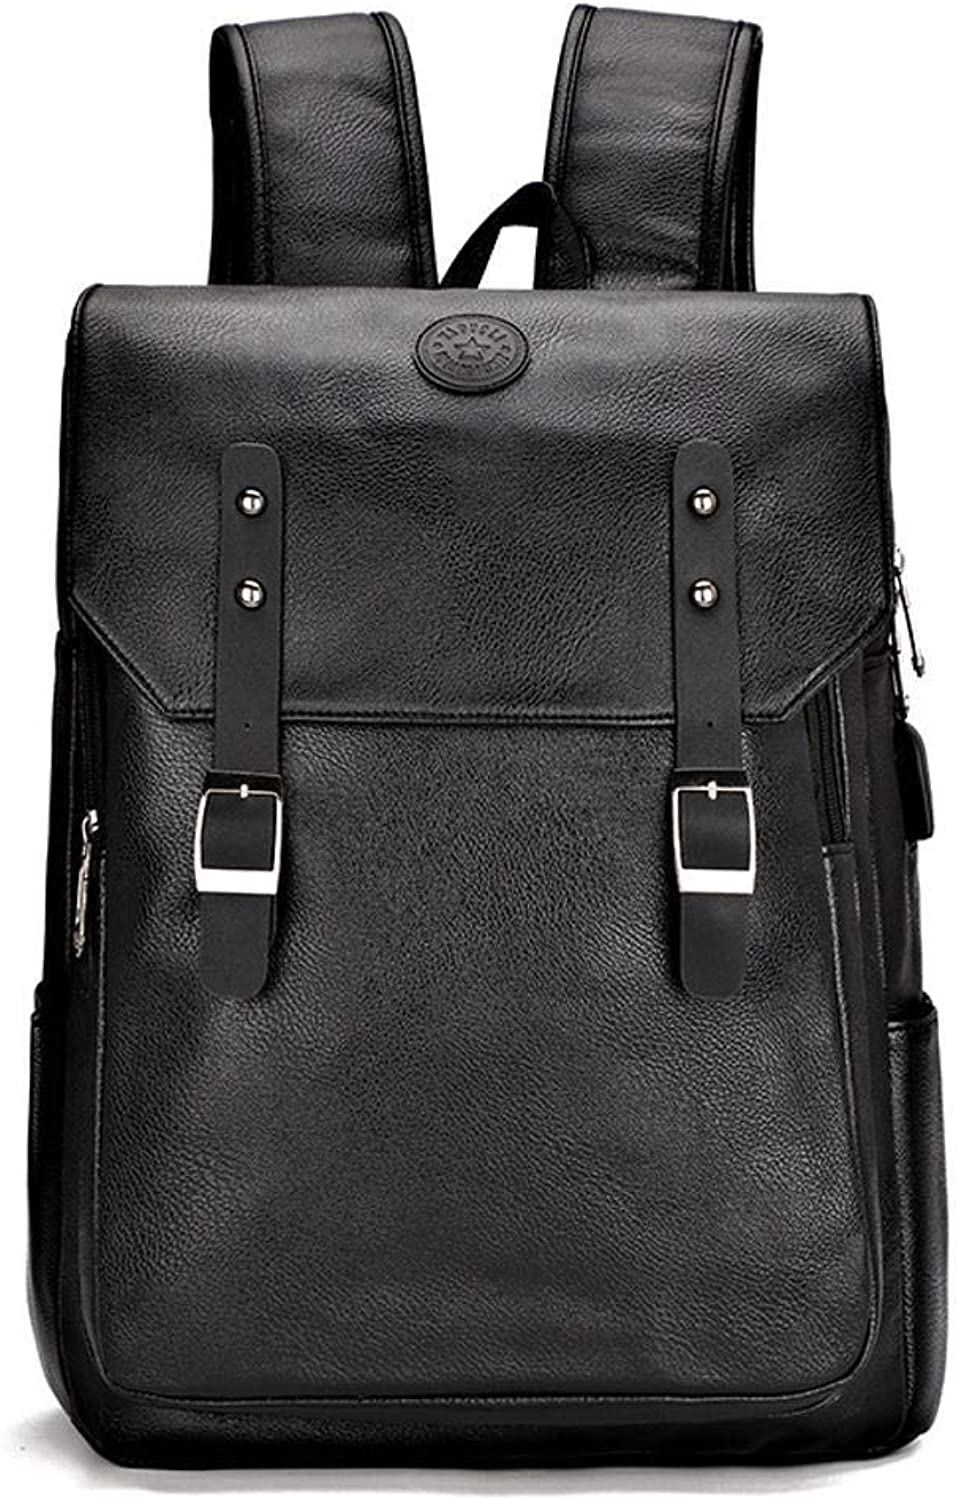 LXIANGP PU Leather Backpack Men's Casual Bag Fashion Trend Business Travel Computer Bag College Youth Bag